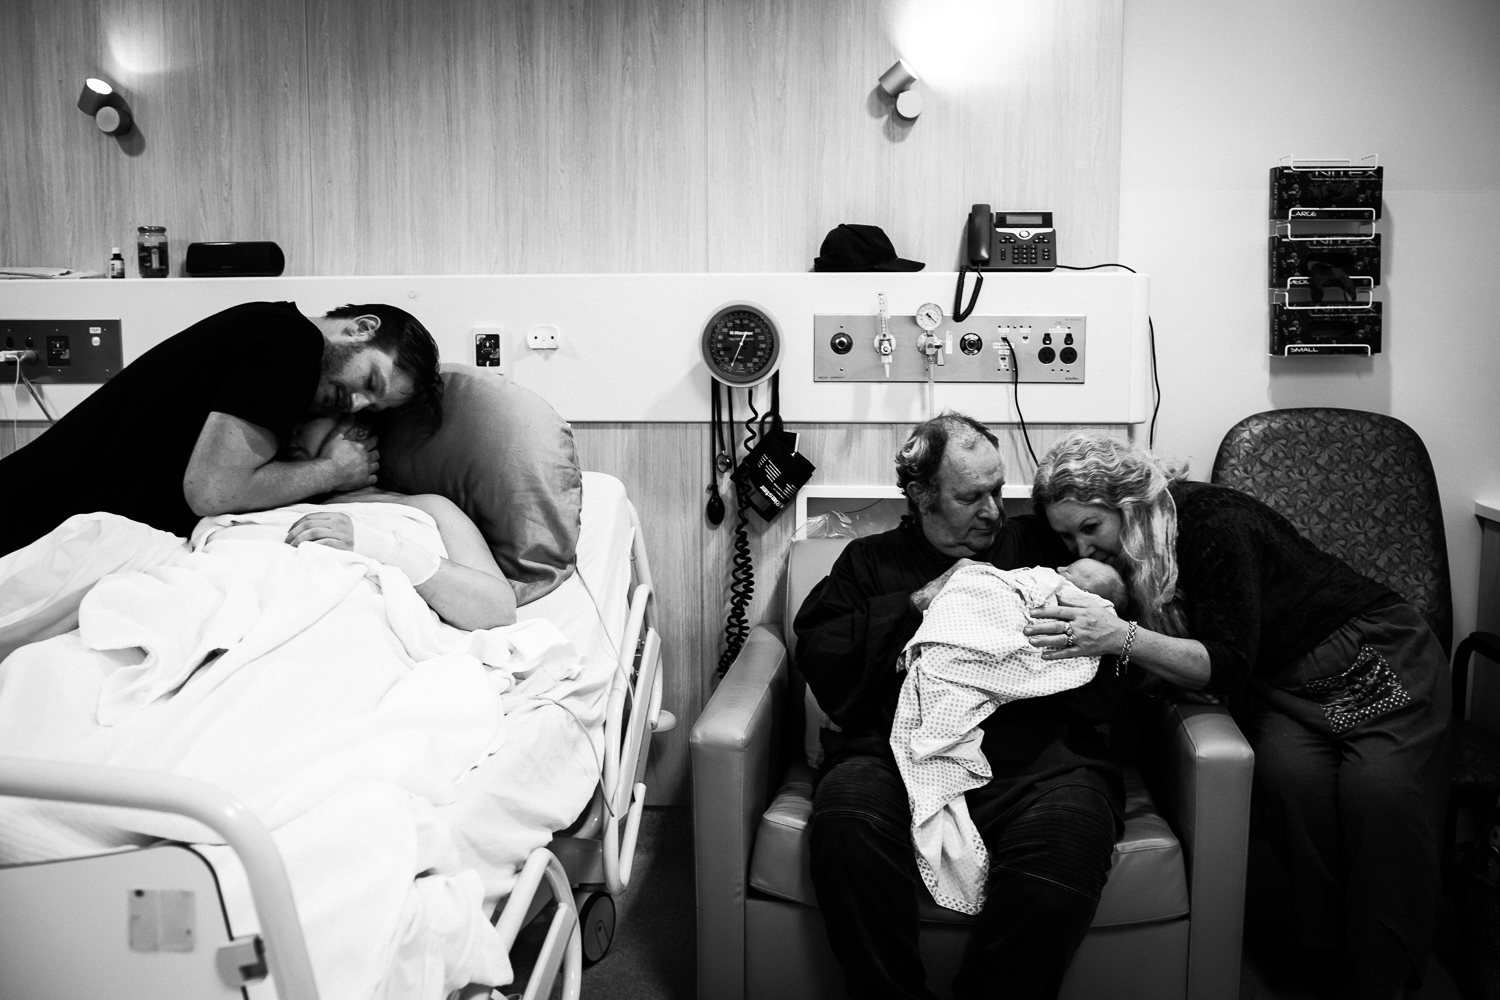 mother and father hugging on hospital bed while grandmother and grandfather hug and kiss newborn baby on chair.